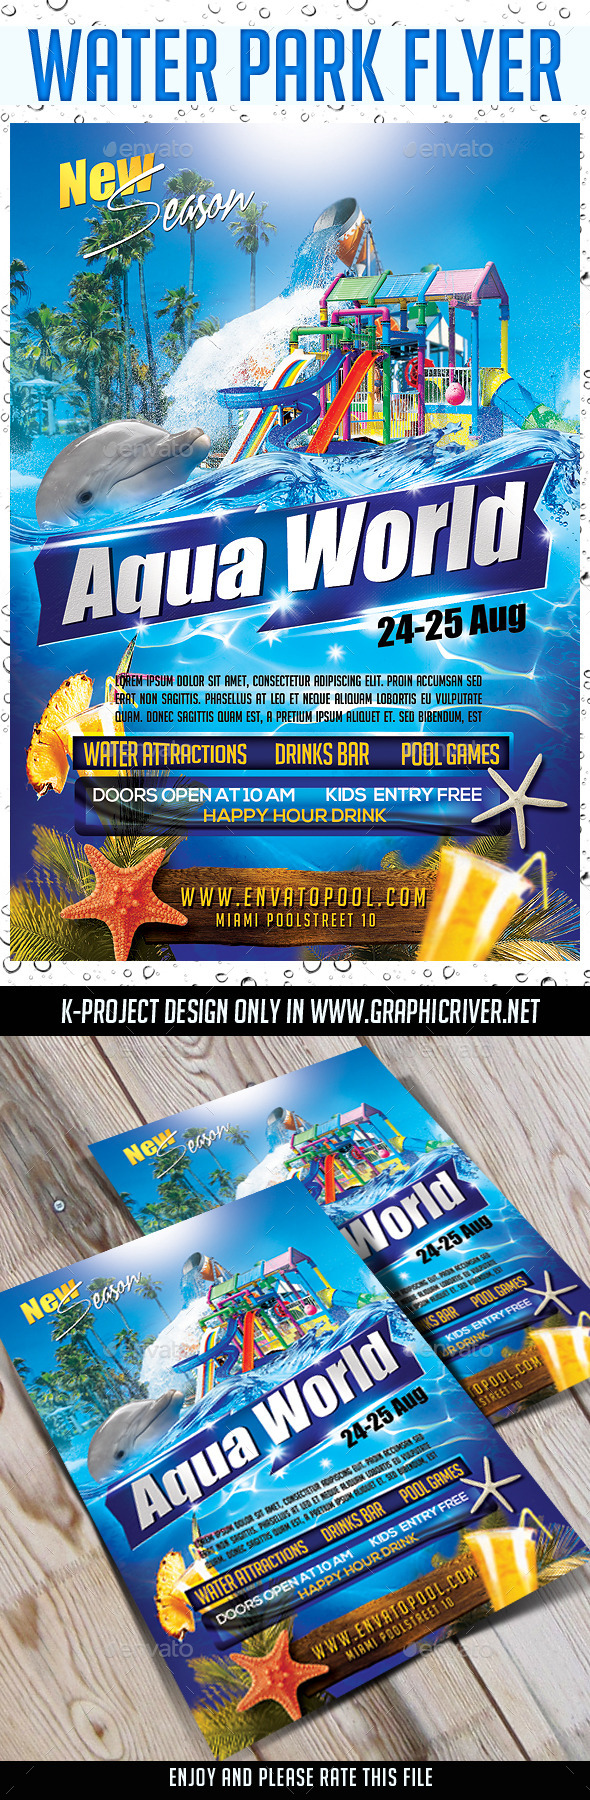 Water Park Flyer - Events Flyers - Water Park Flyer By K-project GraphicRiver